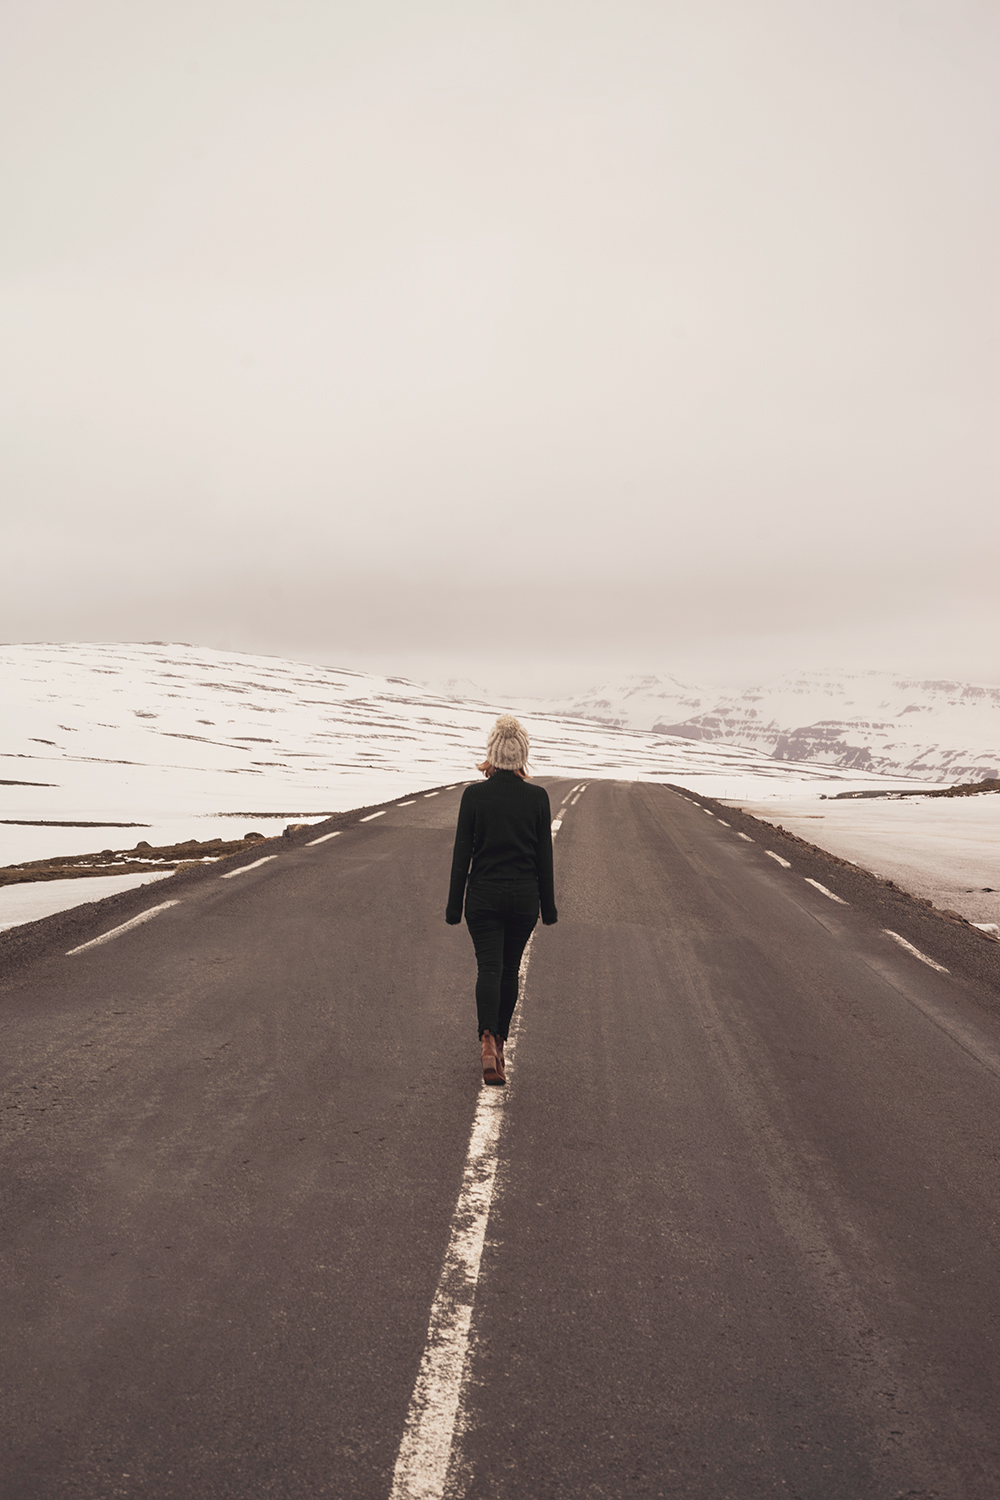 09iceland-eglisstadir-travel-roadtrip-middleoftheroad